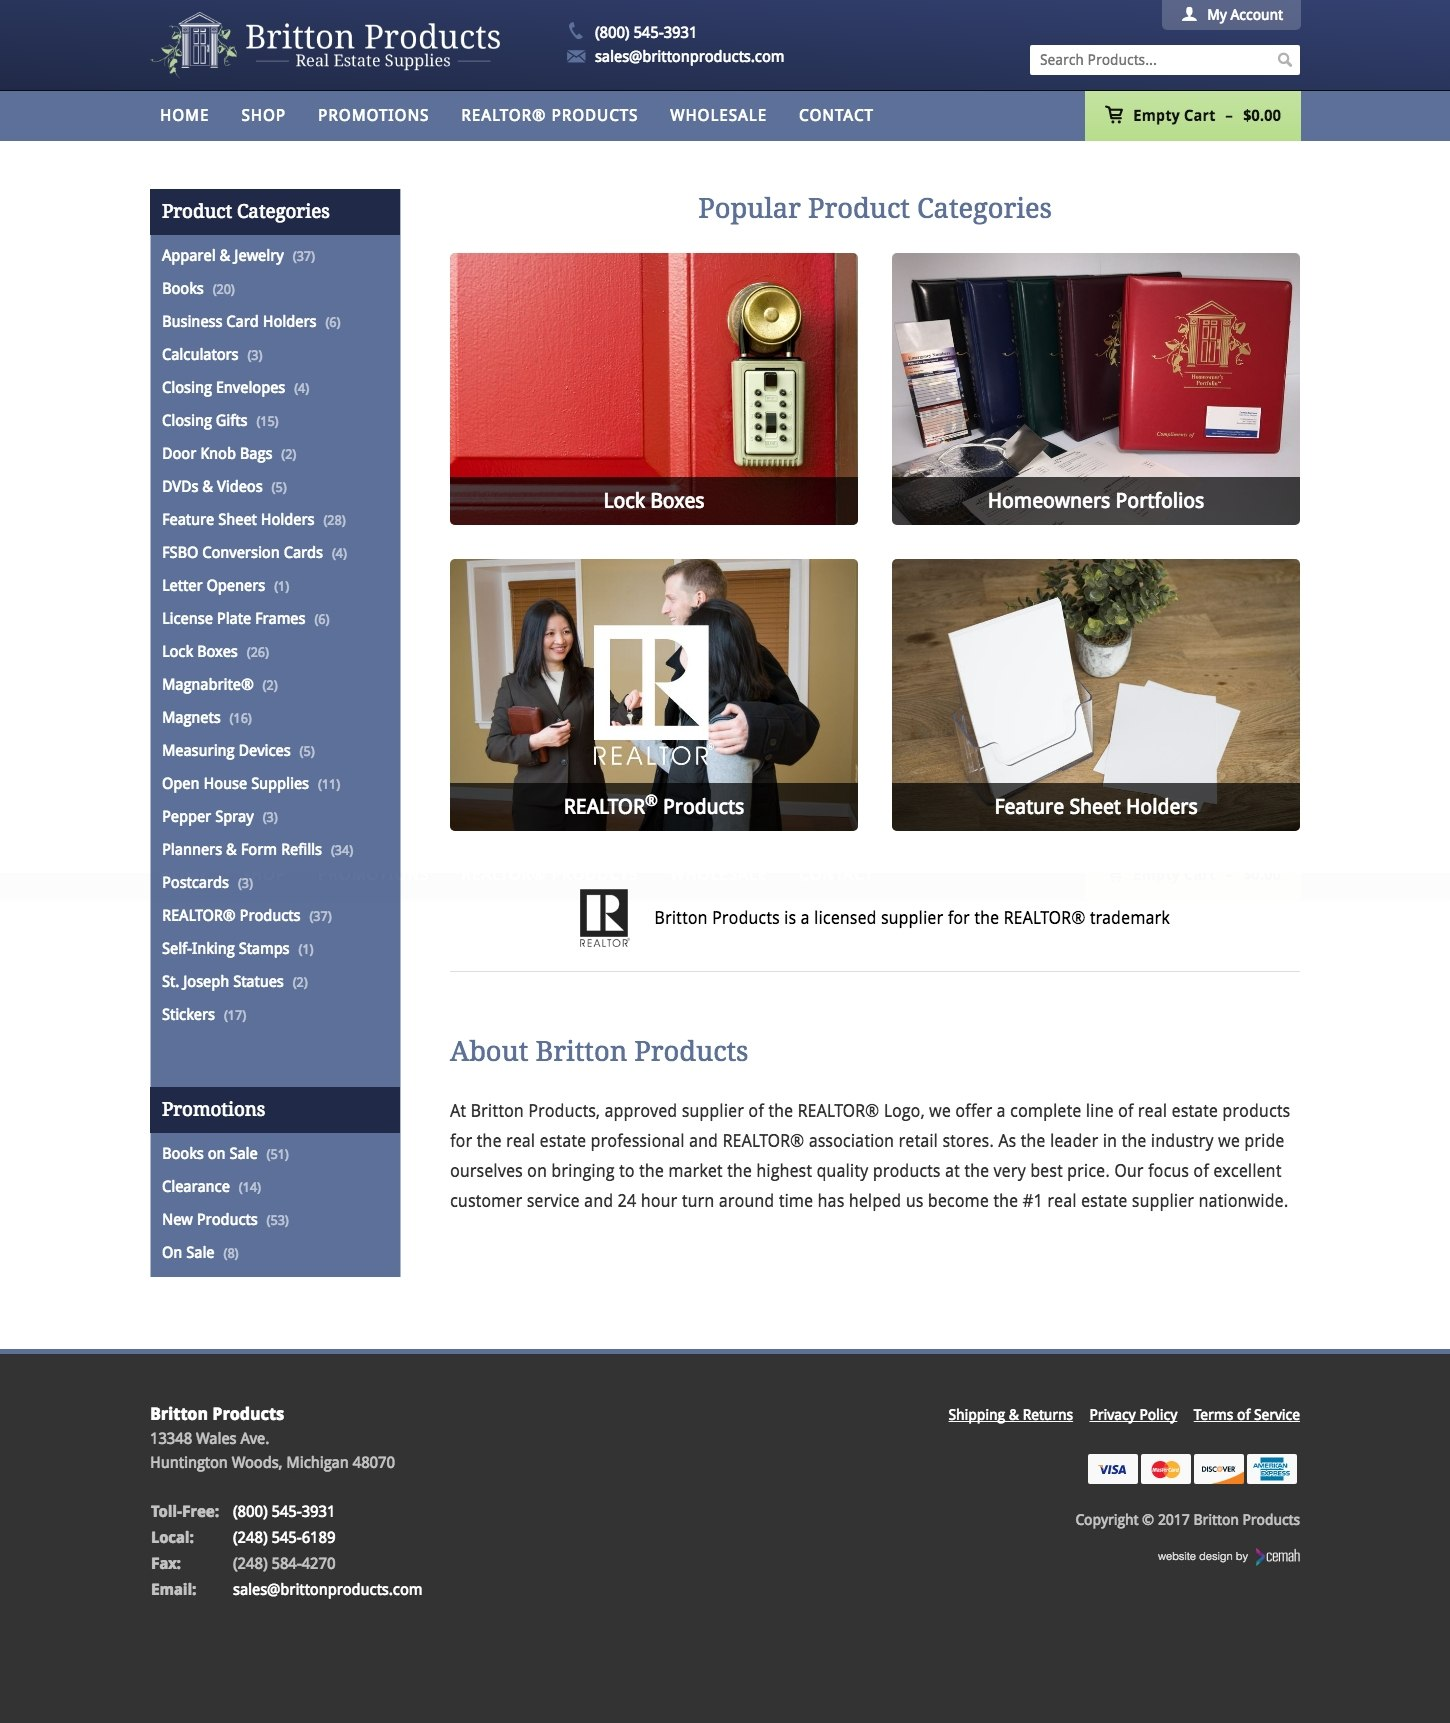 Real estate products website design layout featuring the homepage for a realtor product supplier small business